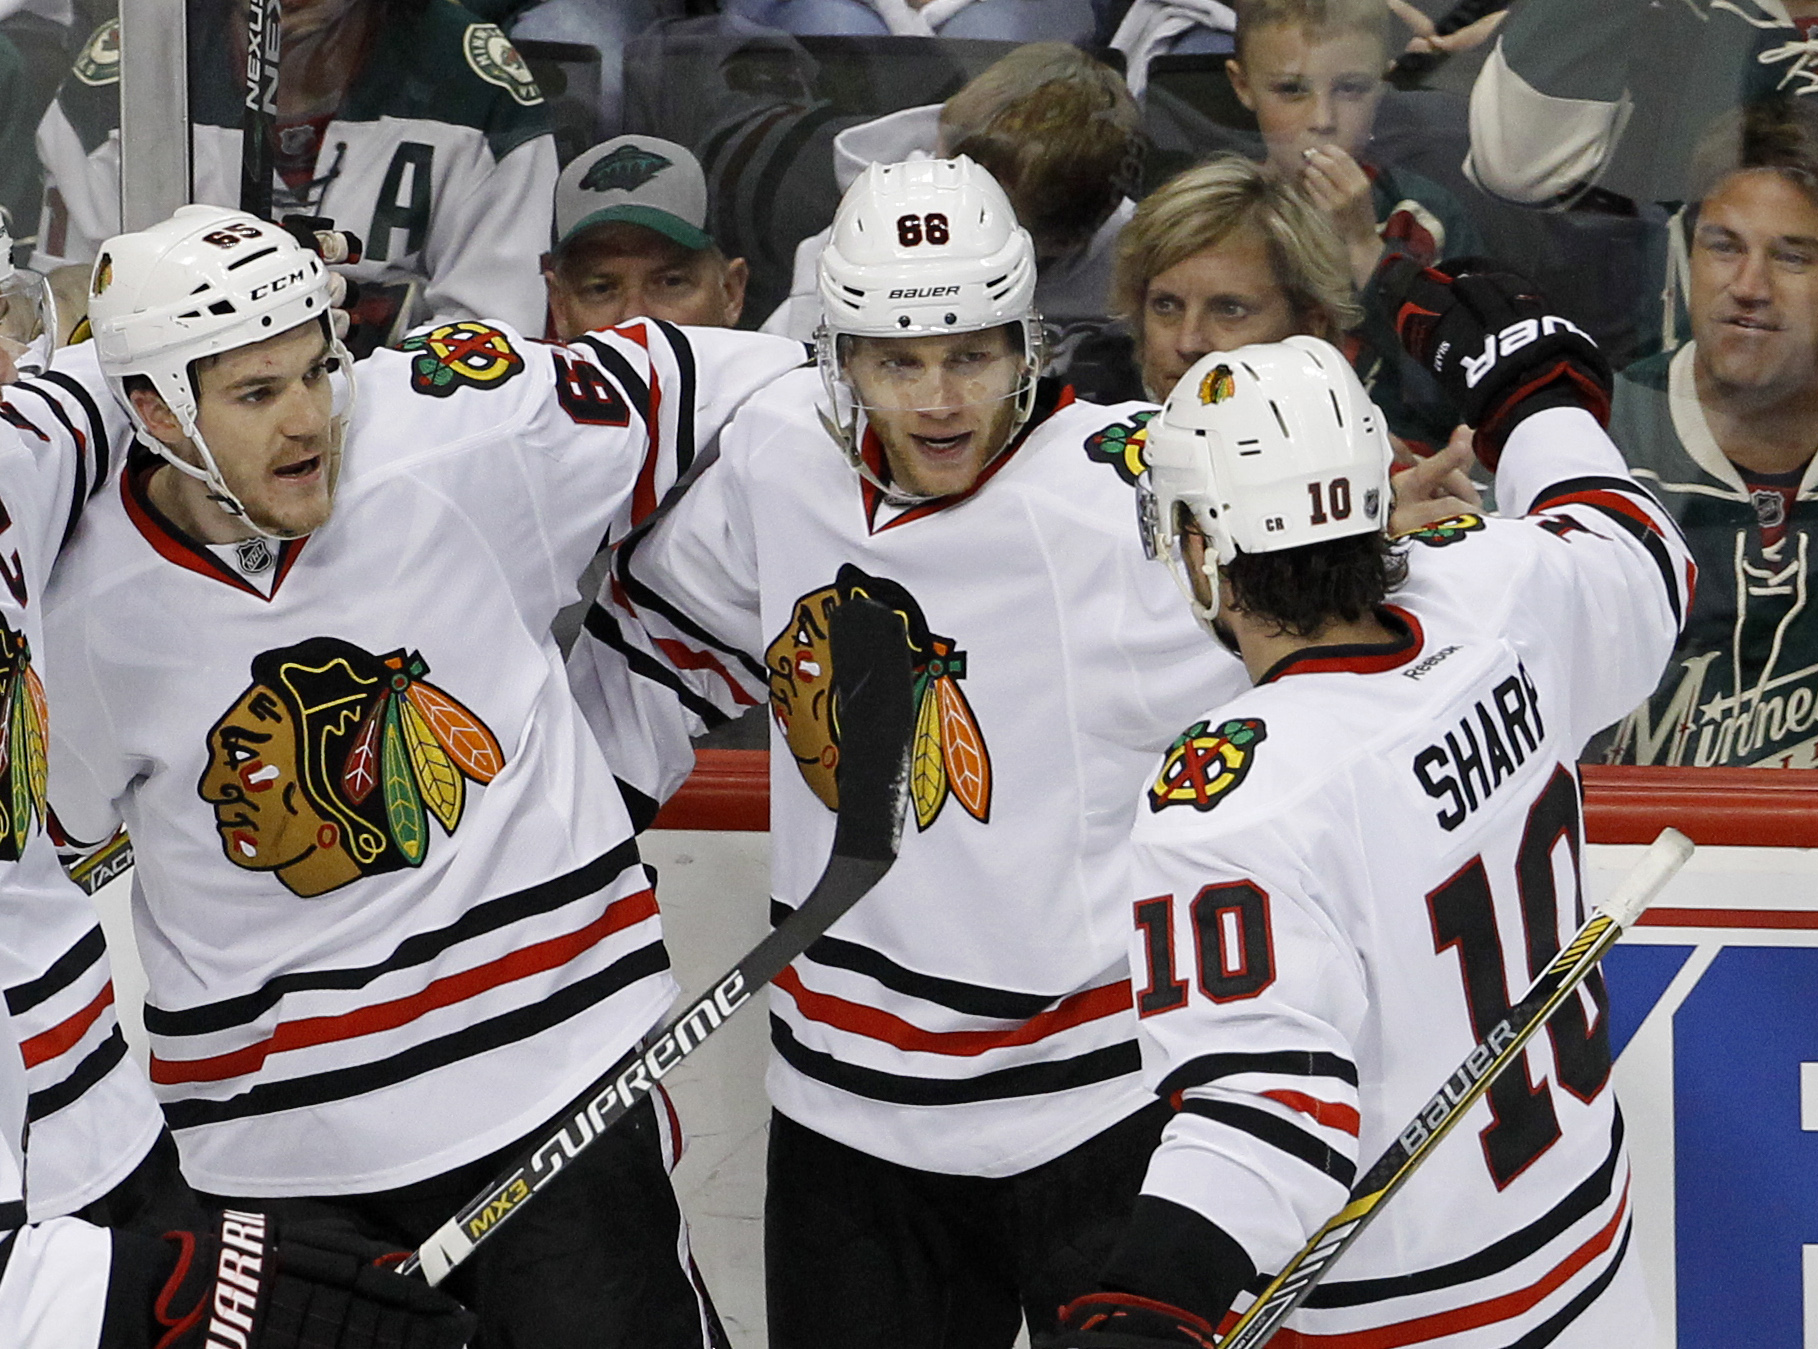 Chicago Blackhawks center Andrew Shaw, left, and left wing Patrick Sharp (10) congratulate right wing Patrick Kane (88) after he scored on Minnesota Wild goalie Devan Dubnyk during the first period of Game 3 in the second round of the NHL Stanley Cup hock